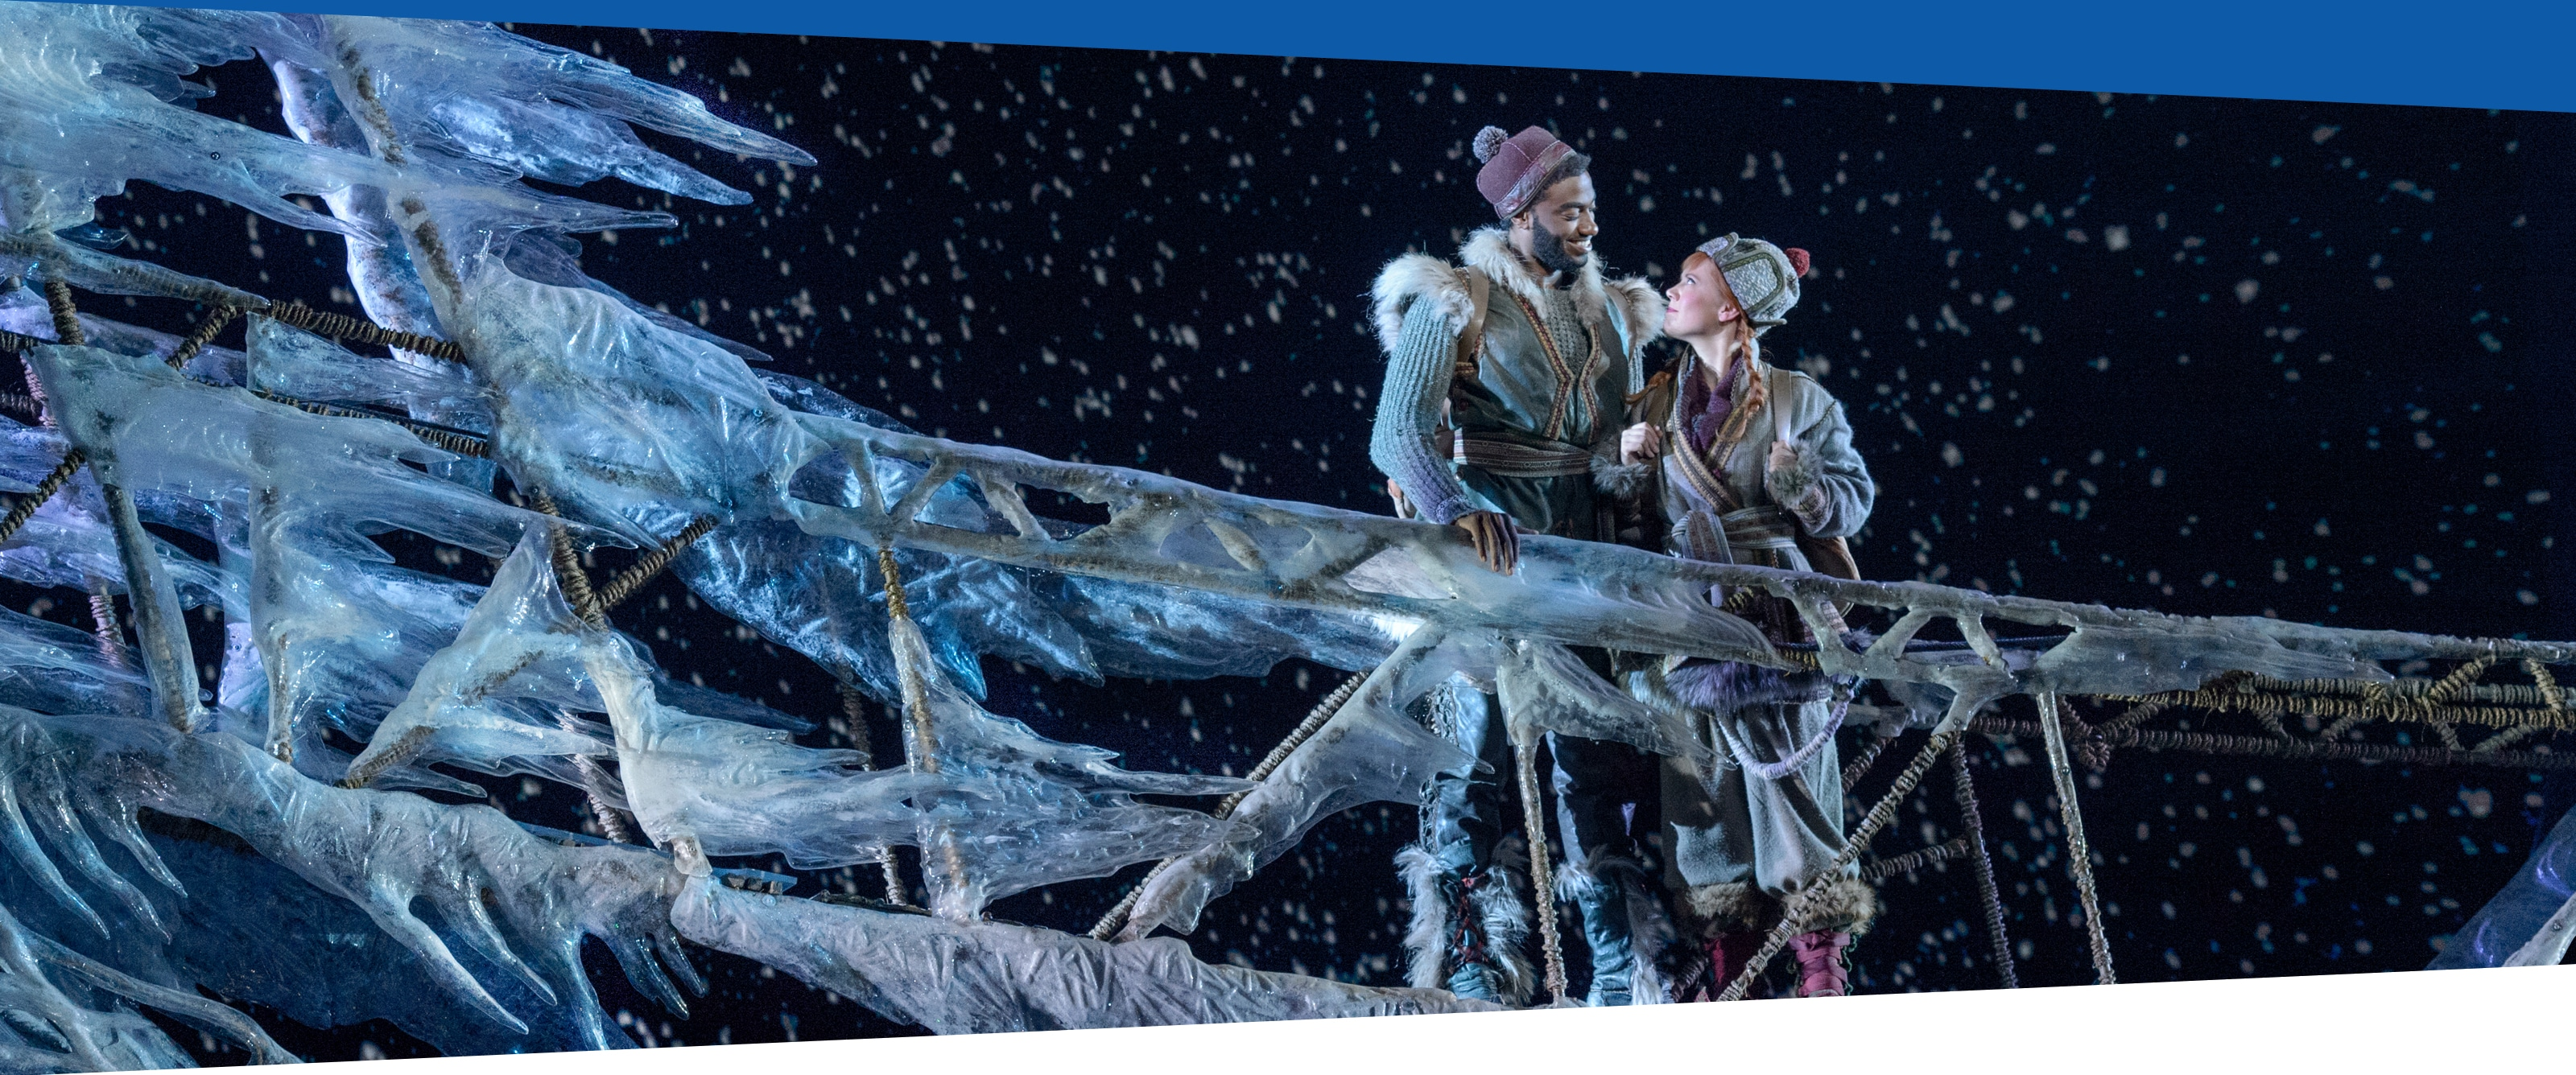 Kristoff and Anna walking across a bridge of ice